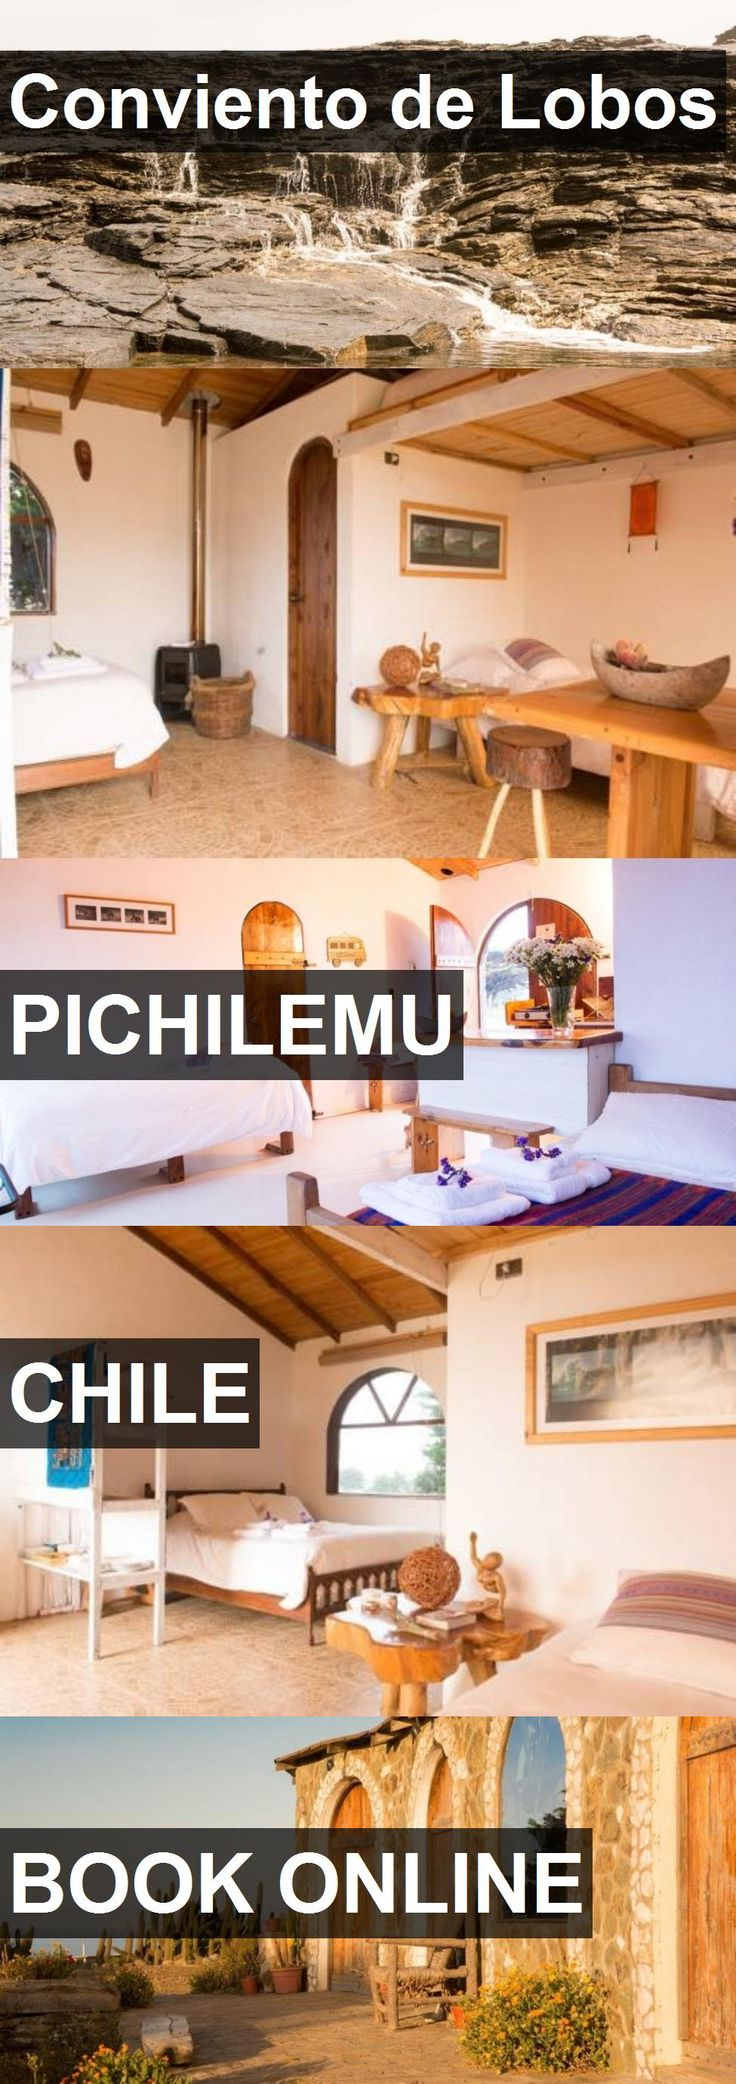 Hotel Conviento de Lobos in Pichilemu, Chile. For more information, photos, reviews and best prices please follow the link. #Chile #Pichilemu #travel #vacation #hotel